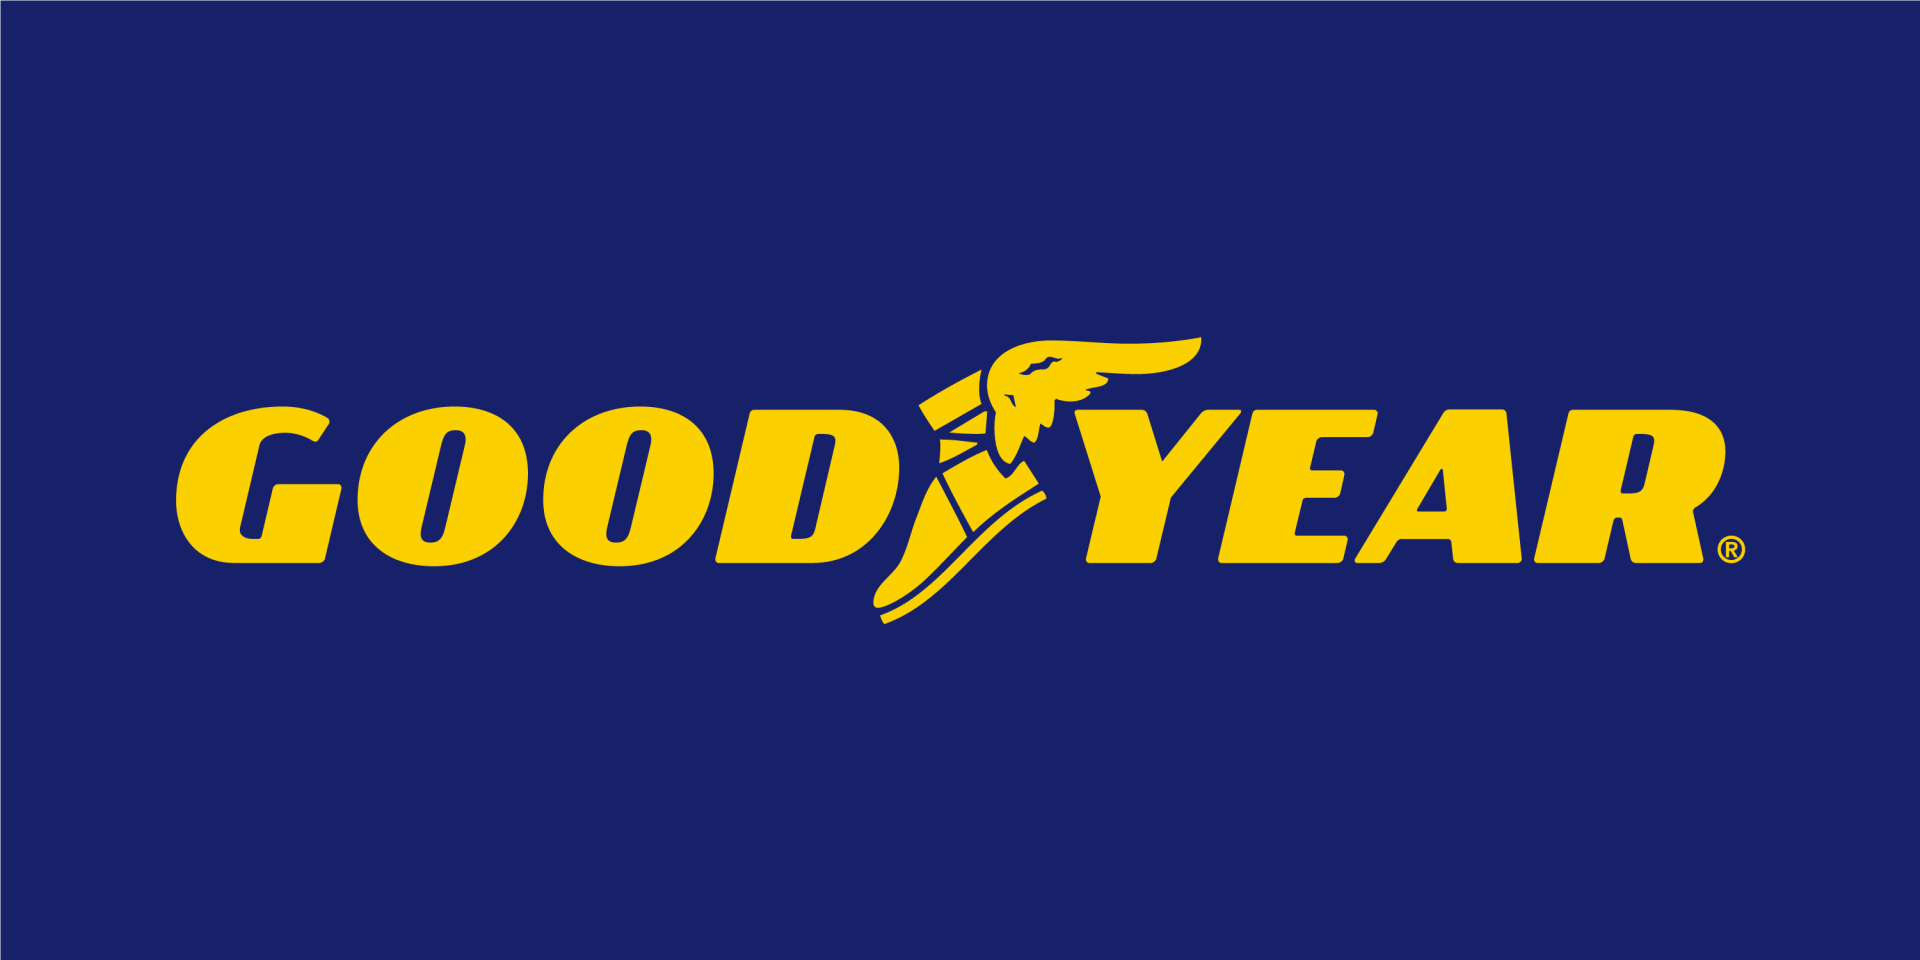 The Goodyear Tire & Rubber Company (NASDAQ:GT) - Lookout for Relative Strength Index